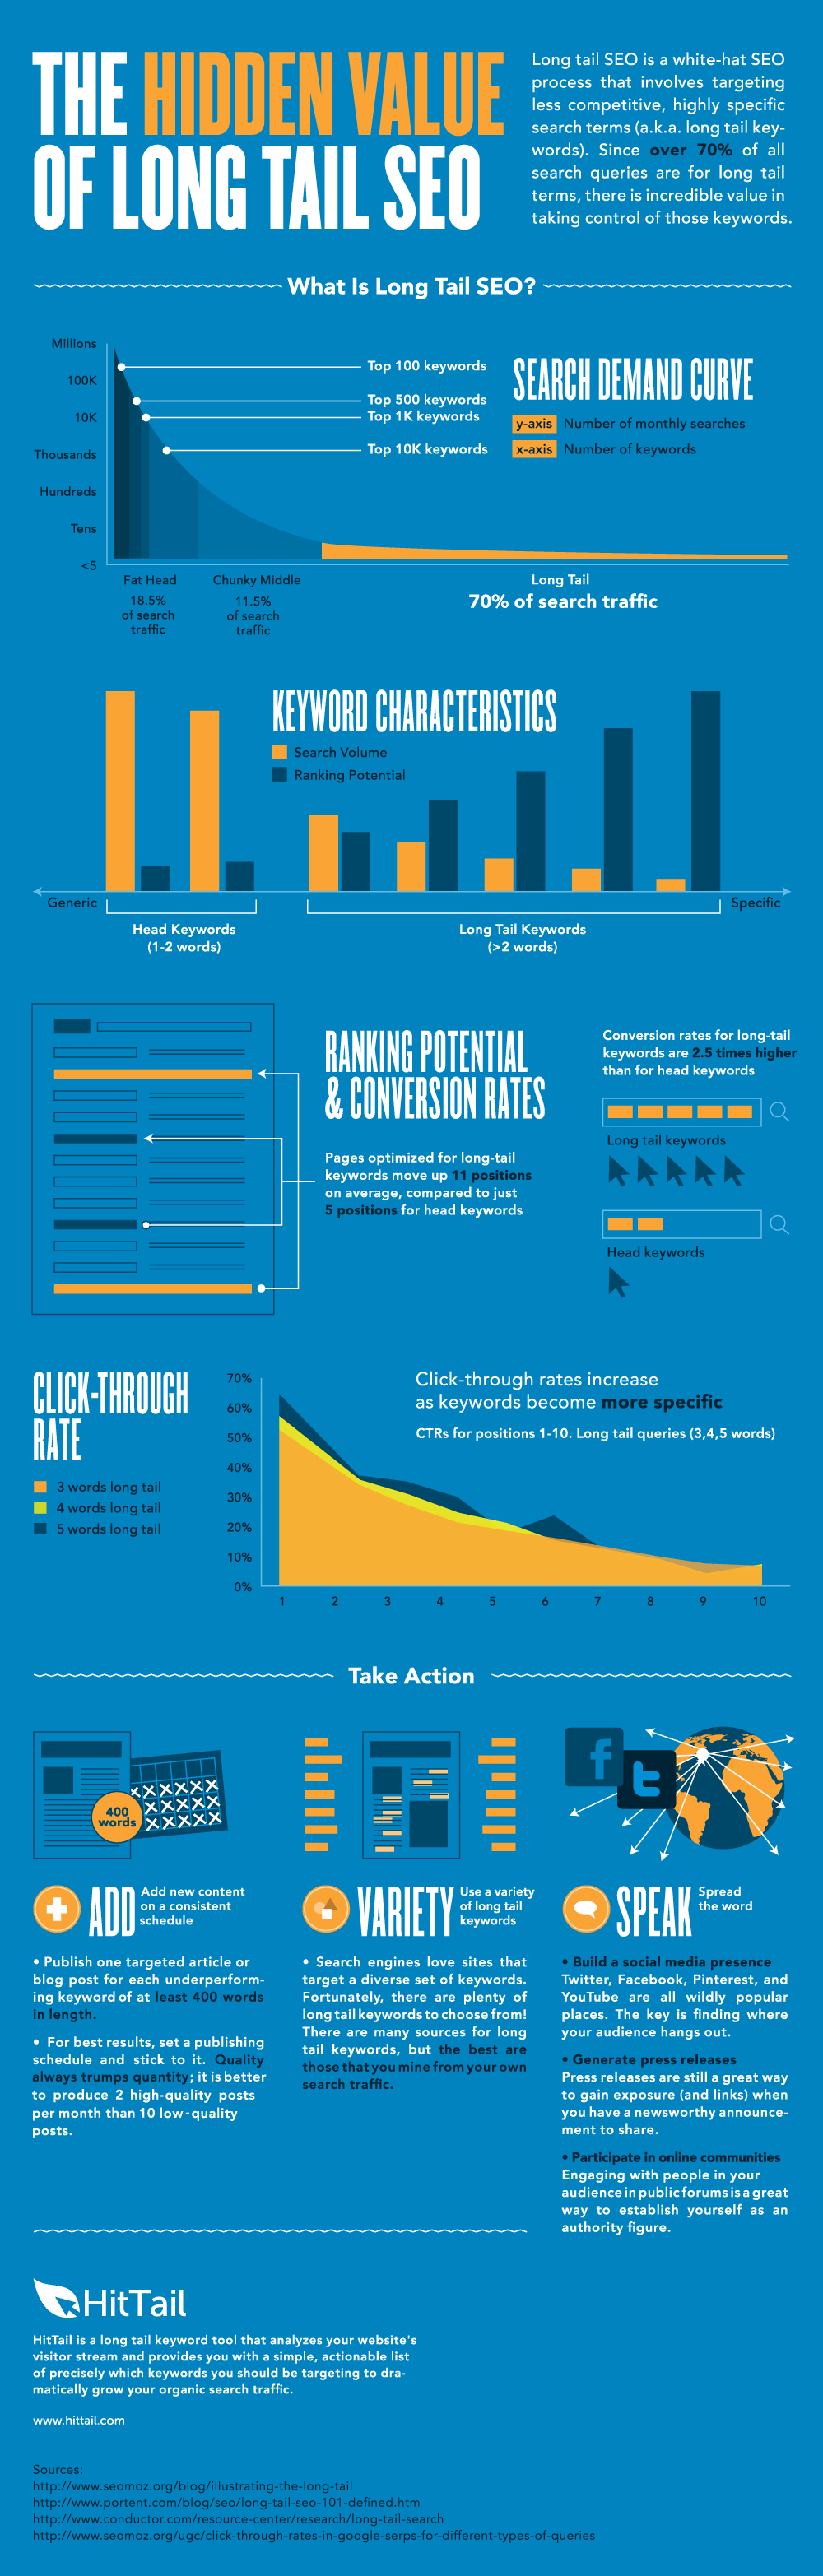 long-tail-seo-guide-infographic